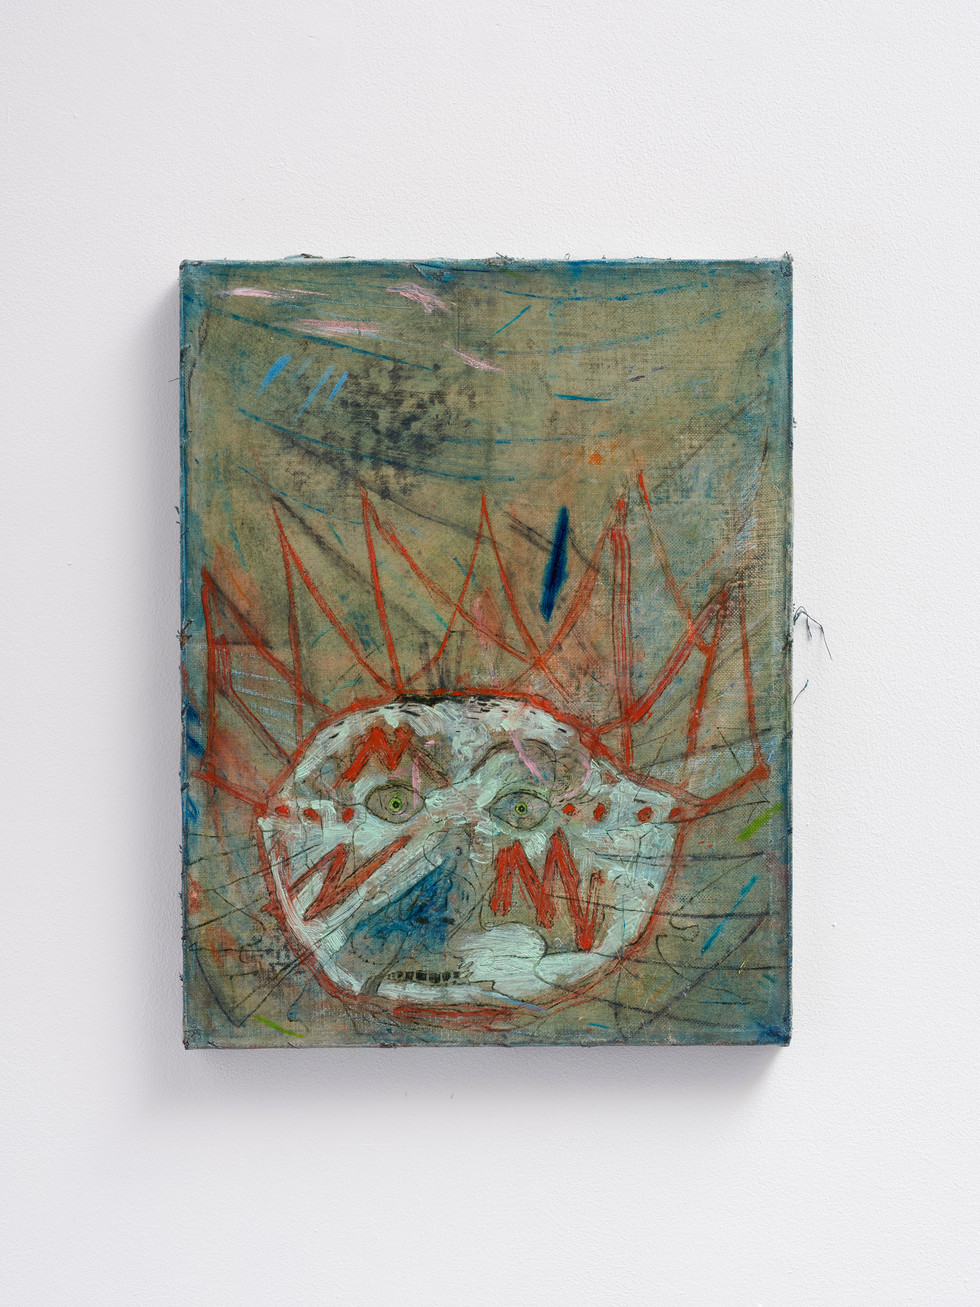 ~ A T an onion. 2015-18. oil paint, oil pastel and pencil on linen. 45.5 x 35.5 cm